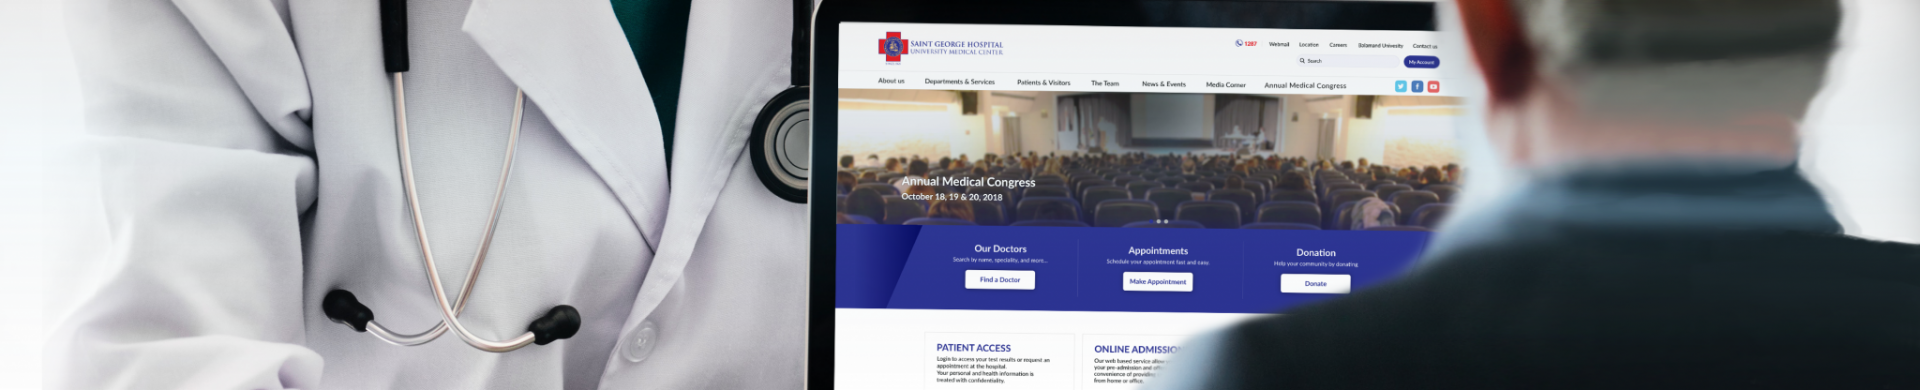 WhiteBeard launches Saint George Hospital's new web site